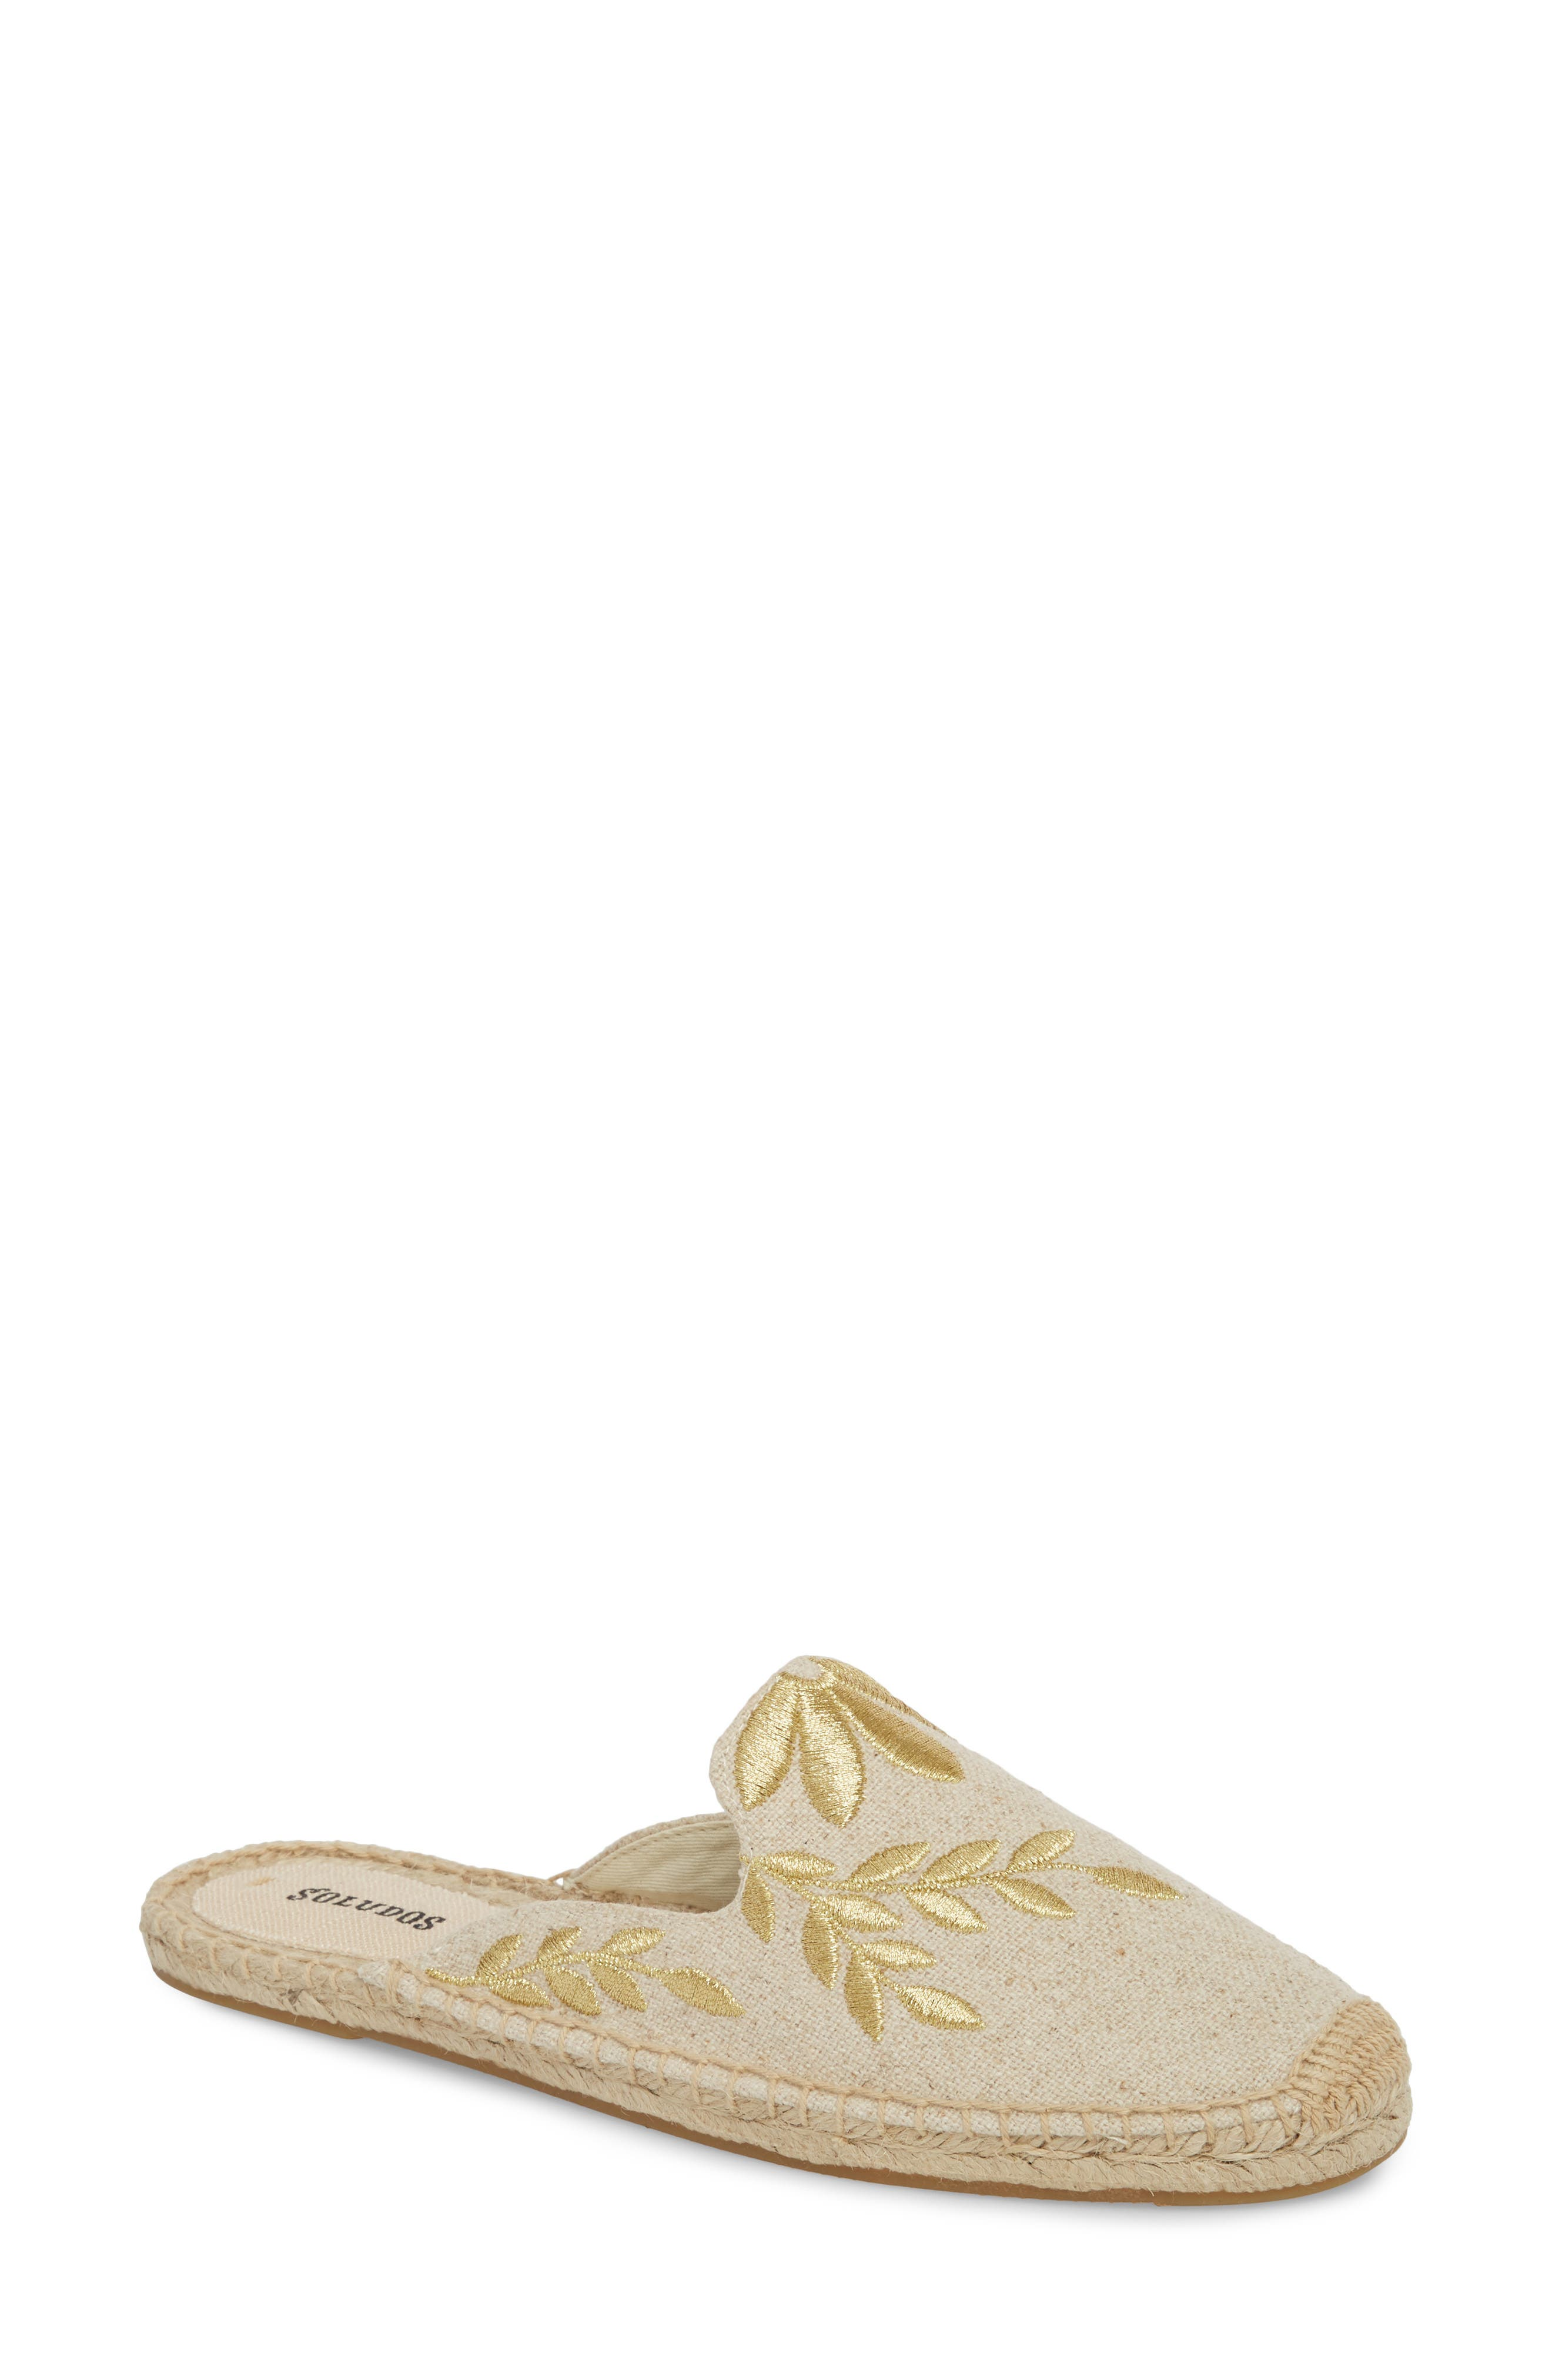 Soludos Women's Leaf Embroidered Loafer Mule